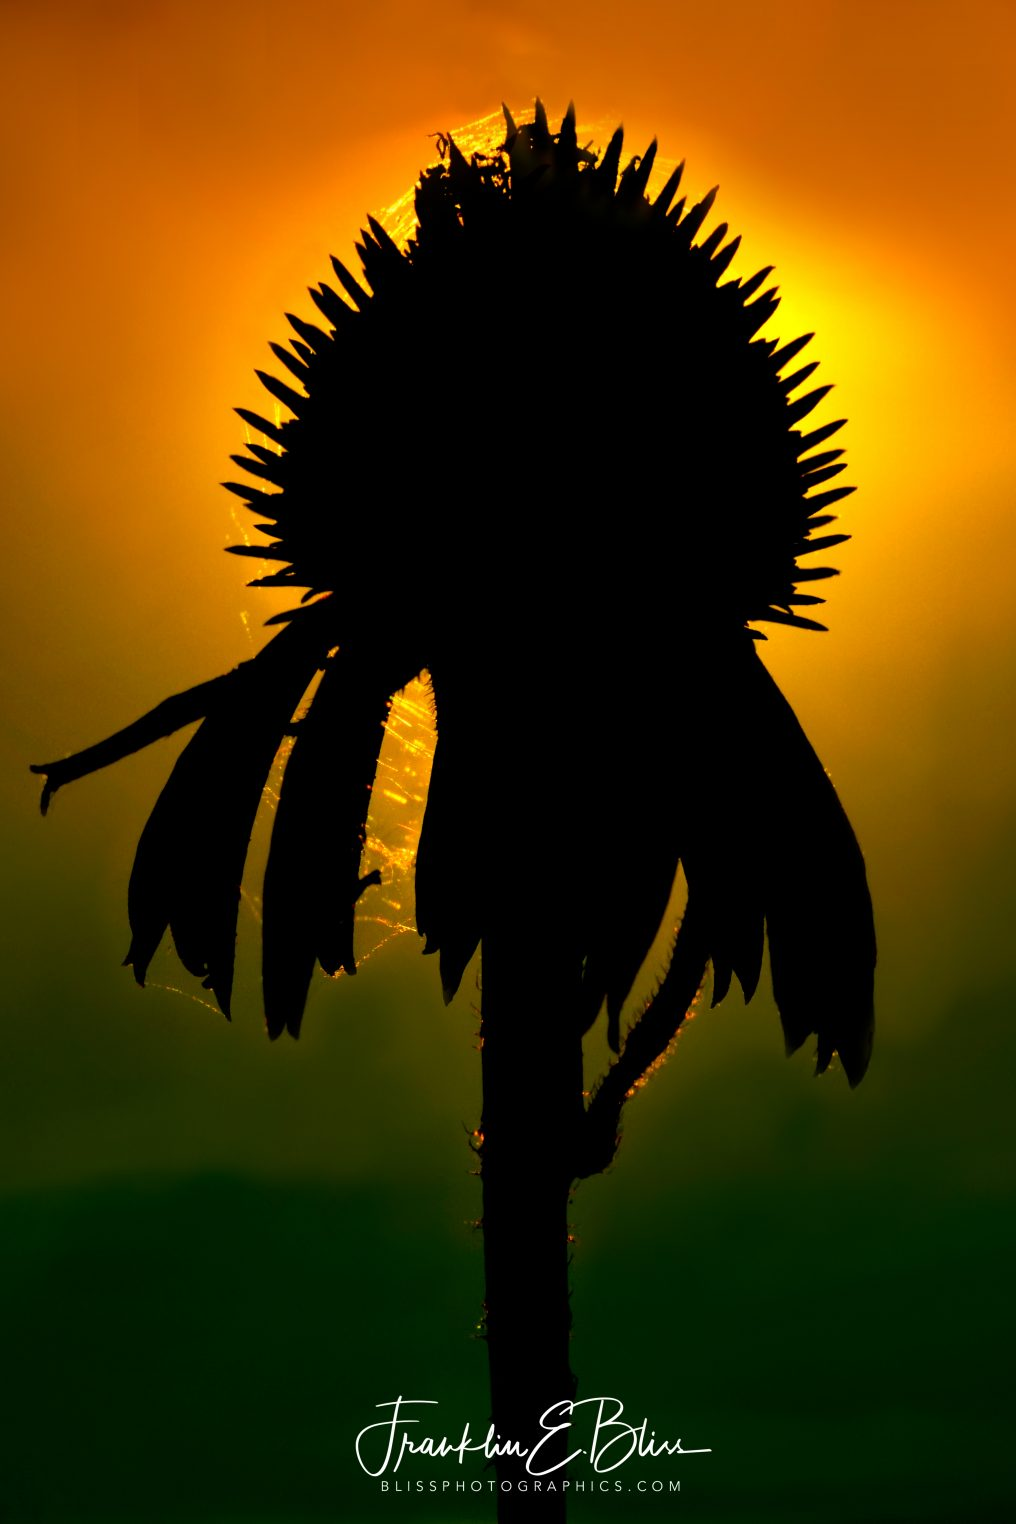 An Echinacea Silhouette From One Moment in Time